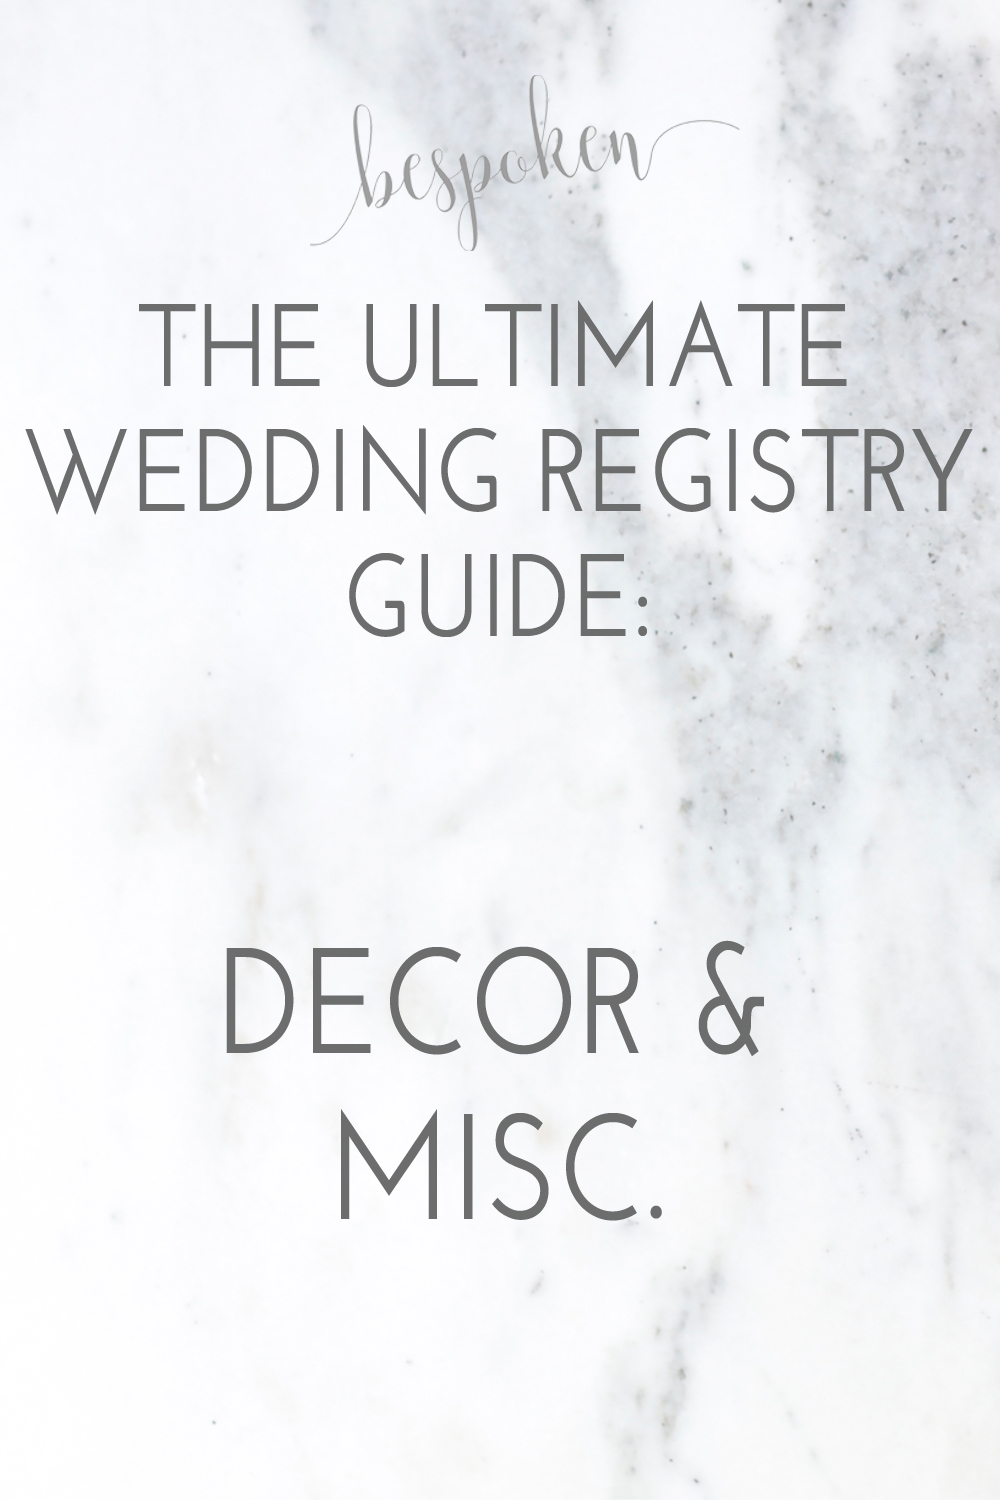 The Ultimate Wedding Registry Guide: Decor & Miscellaneous | Bespoken www.bespokenweddings.com